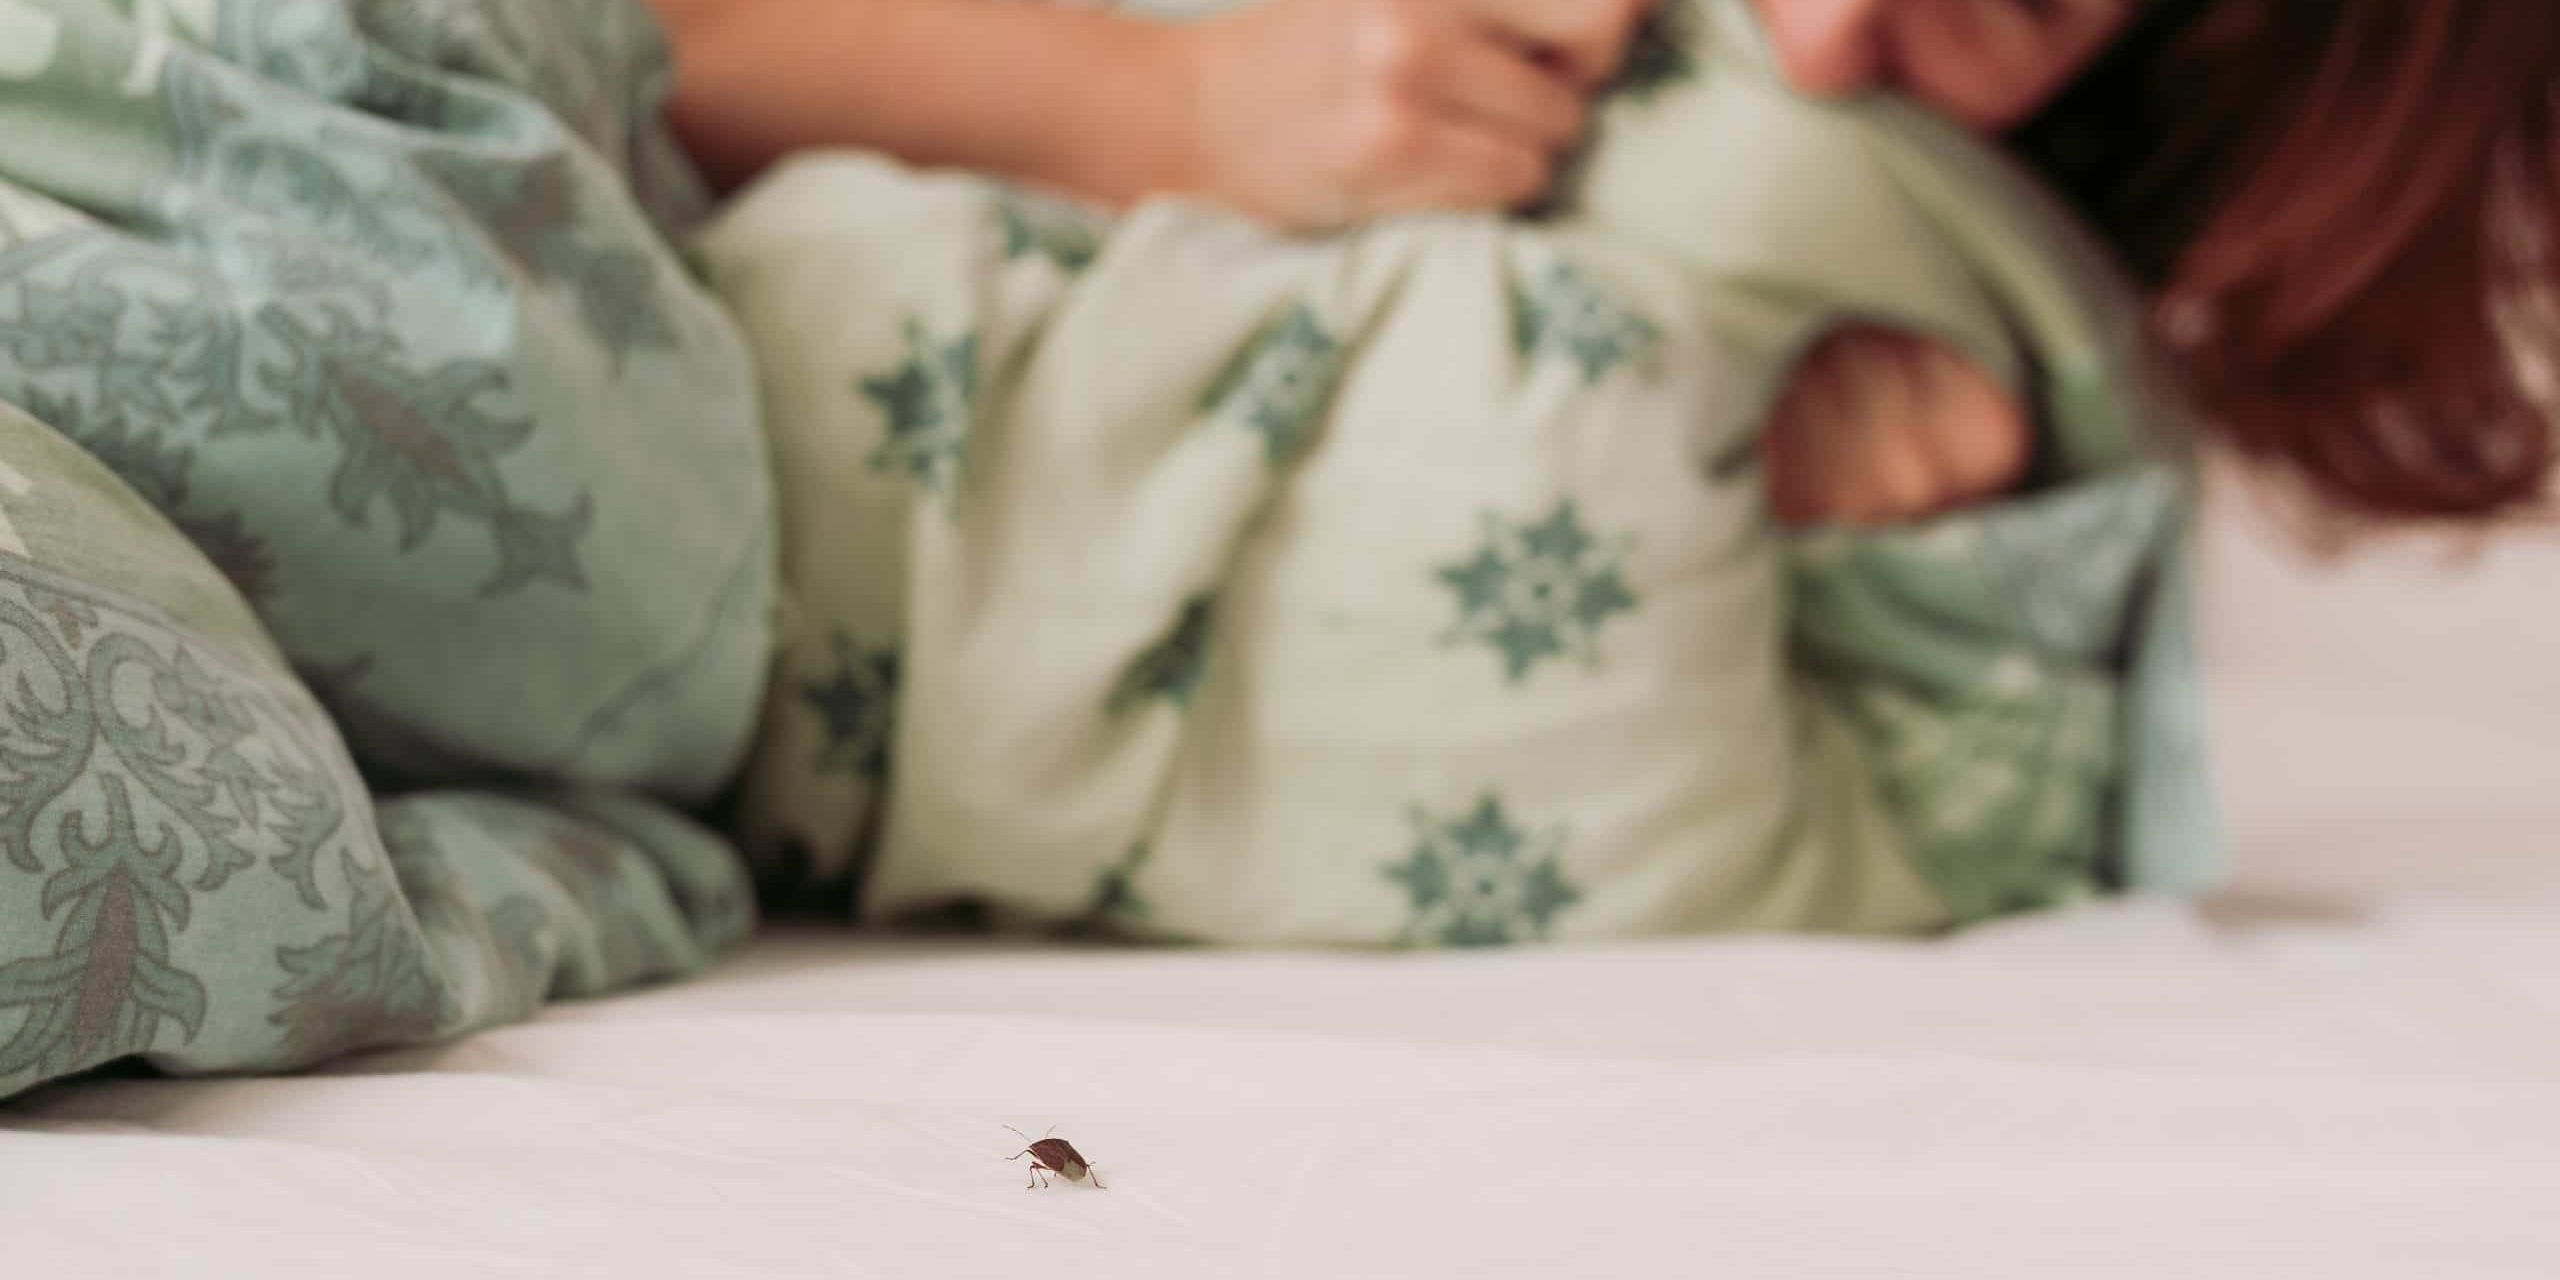 woman in bed scared of stink bug